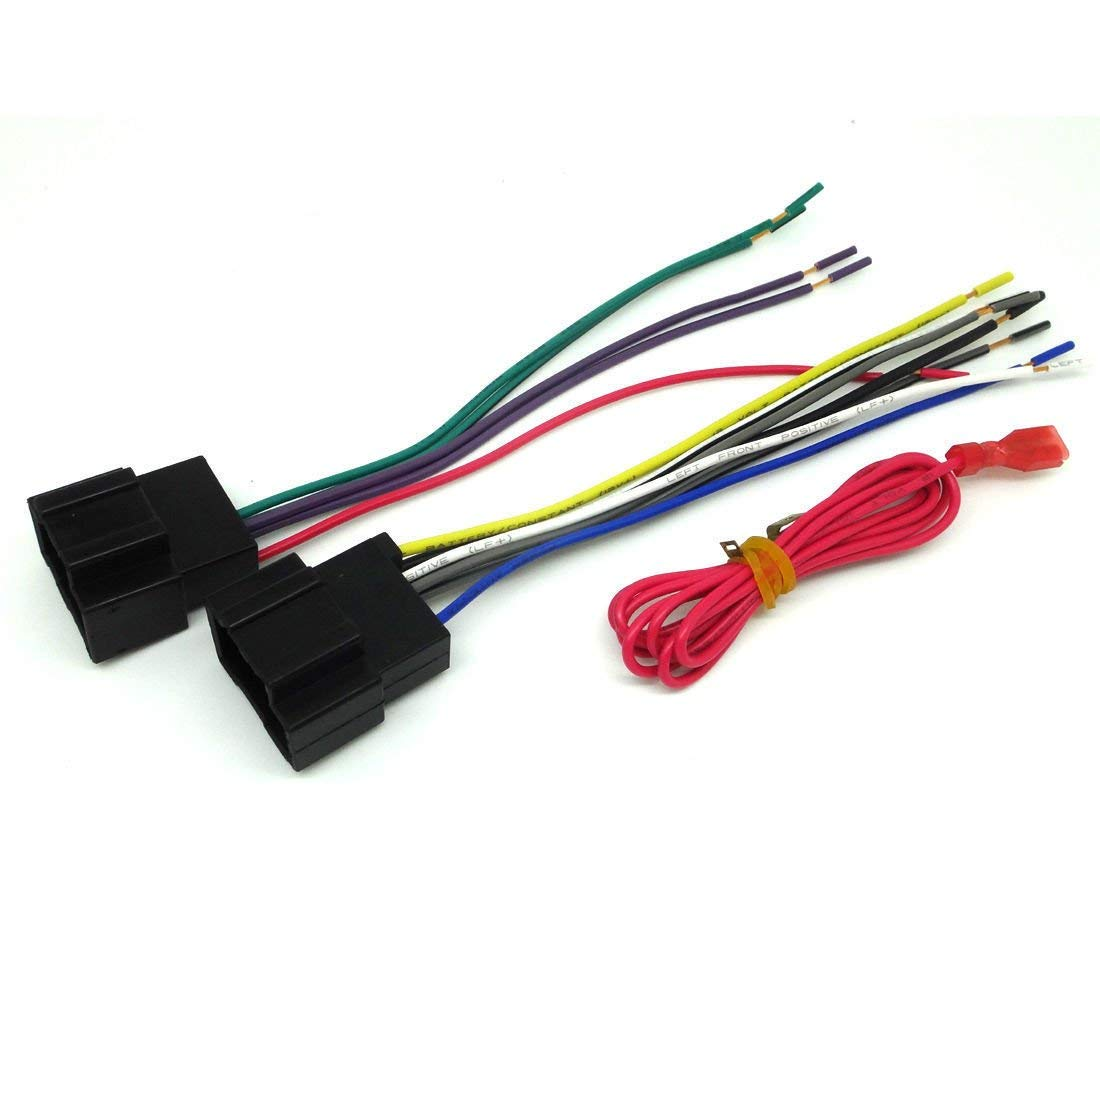 hight resolution of get quotations for gm car stereo cd player wiring harness wire aftermarket radio install plug 2007 2011